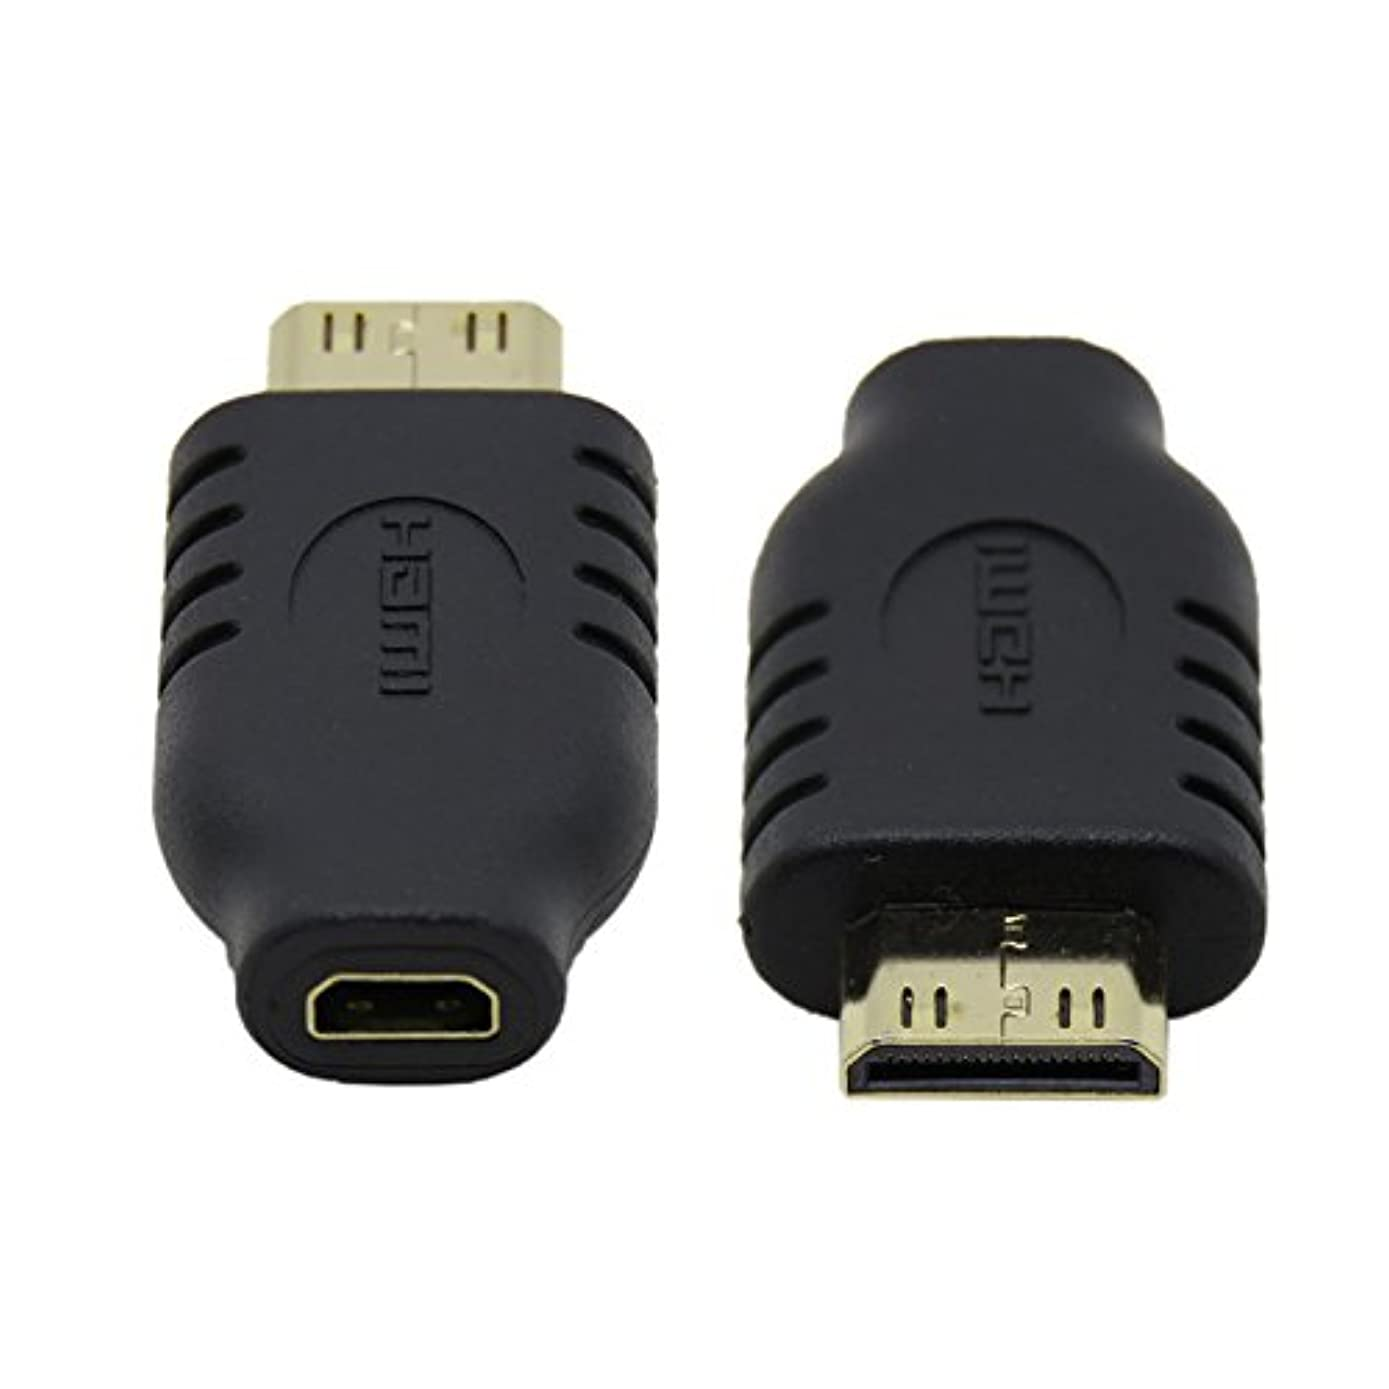 JSER Type D Micro HDMI Socket Female to Type-C Mini HDMI 1.4 Male Convertor Adapter